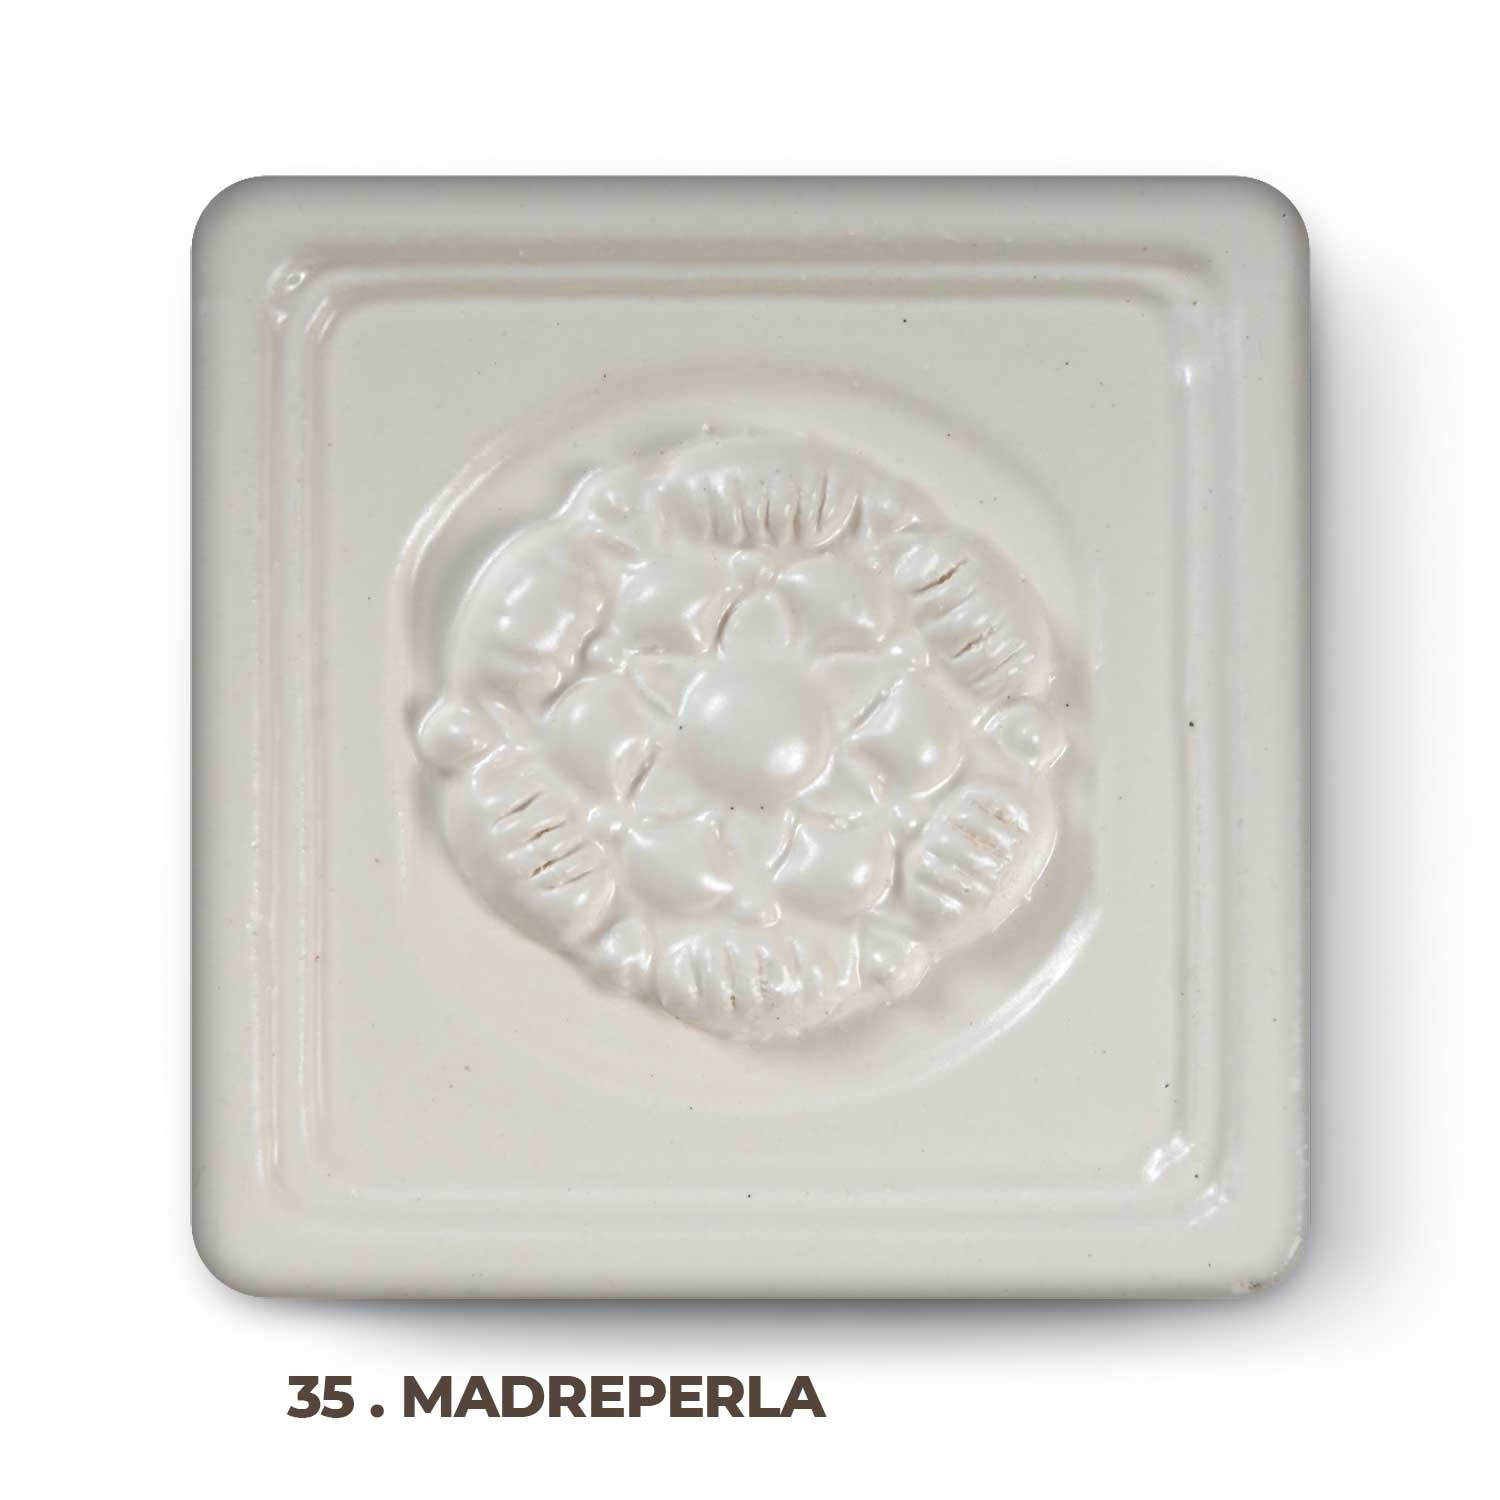 35 . Madreperla